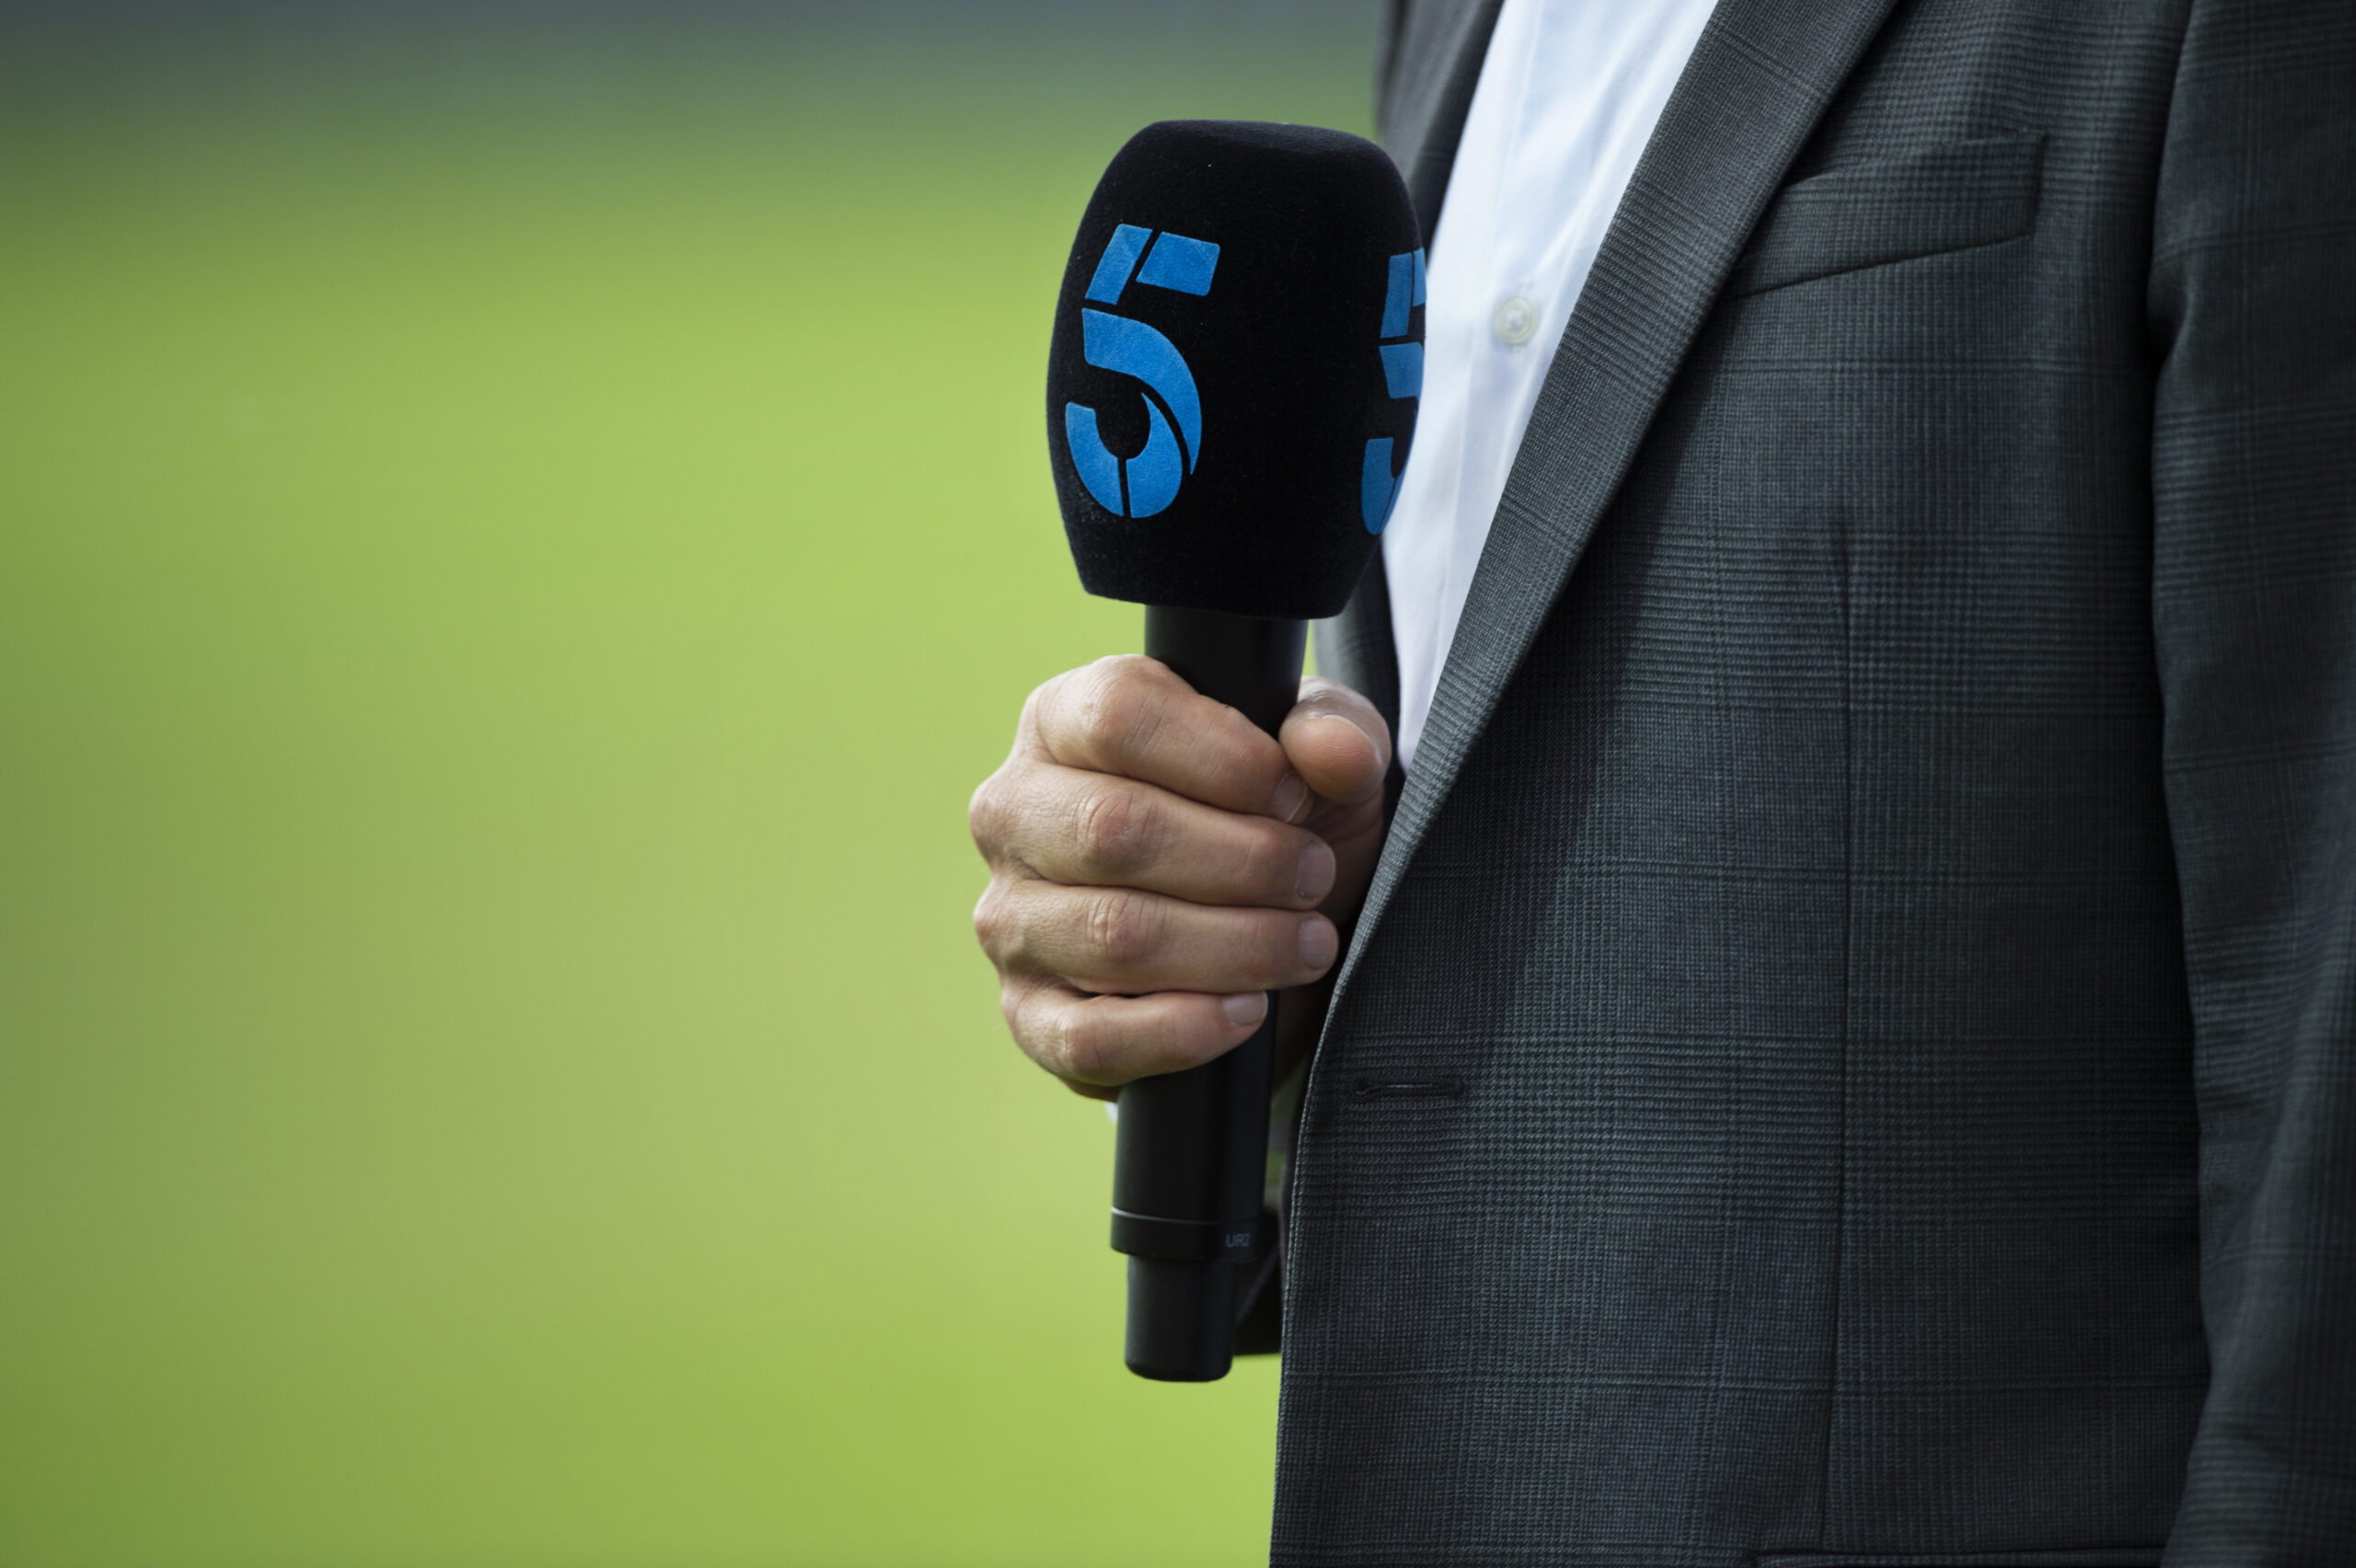 LEEDS, ENGLAND - JUNE 03: A Channel 5 microphone before day three of the 2nd NatWest Test match between England and Pakistan at Headingley on June 3, 2018 in Leeds, England. (Photo by Visionhaus/Corbis via Getty Images)